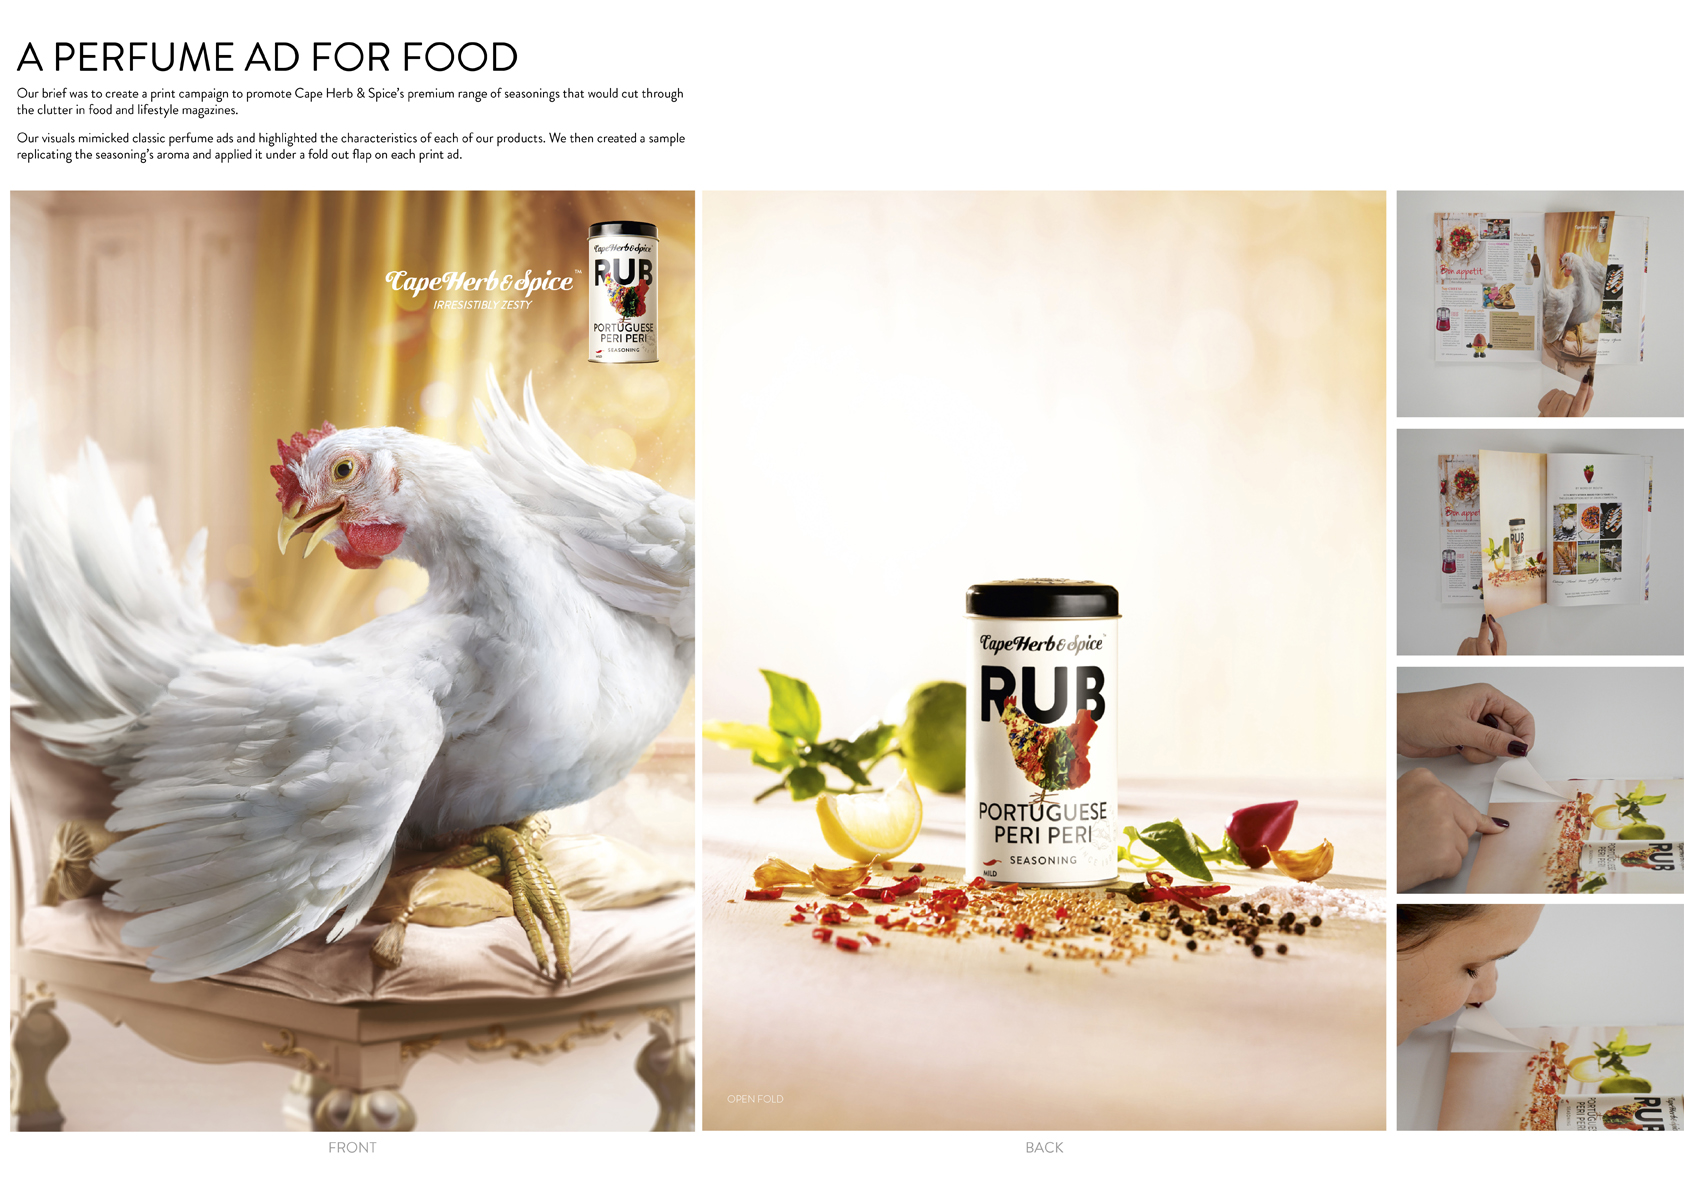 the-cape-herb-spice-company-cape-herb-spice-rubs-a-perfume-ad-for-food-media-direct-marketing-print-374759-adeevee.jpg